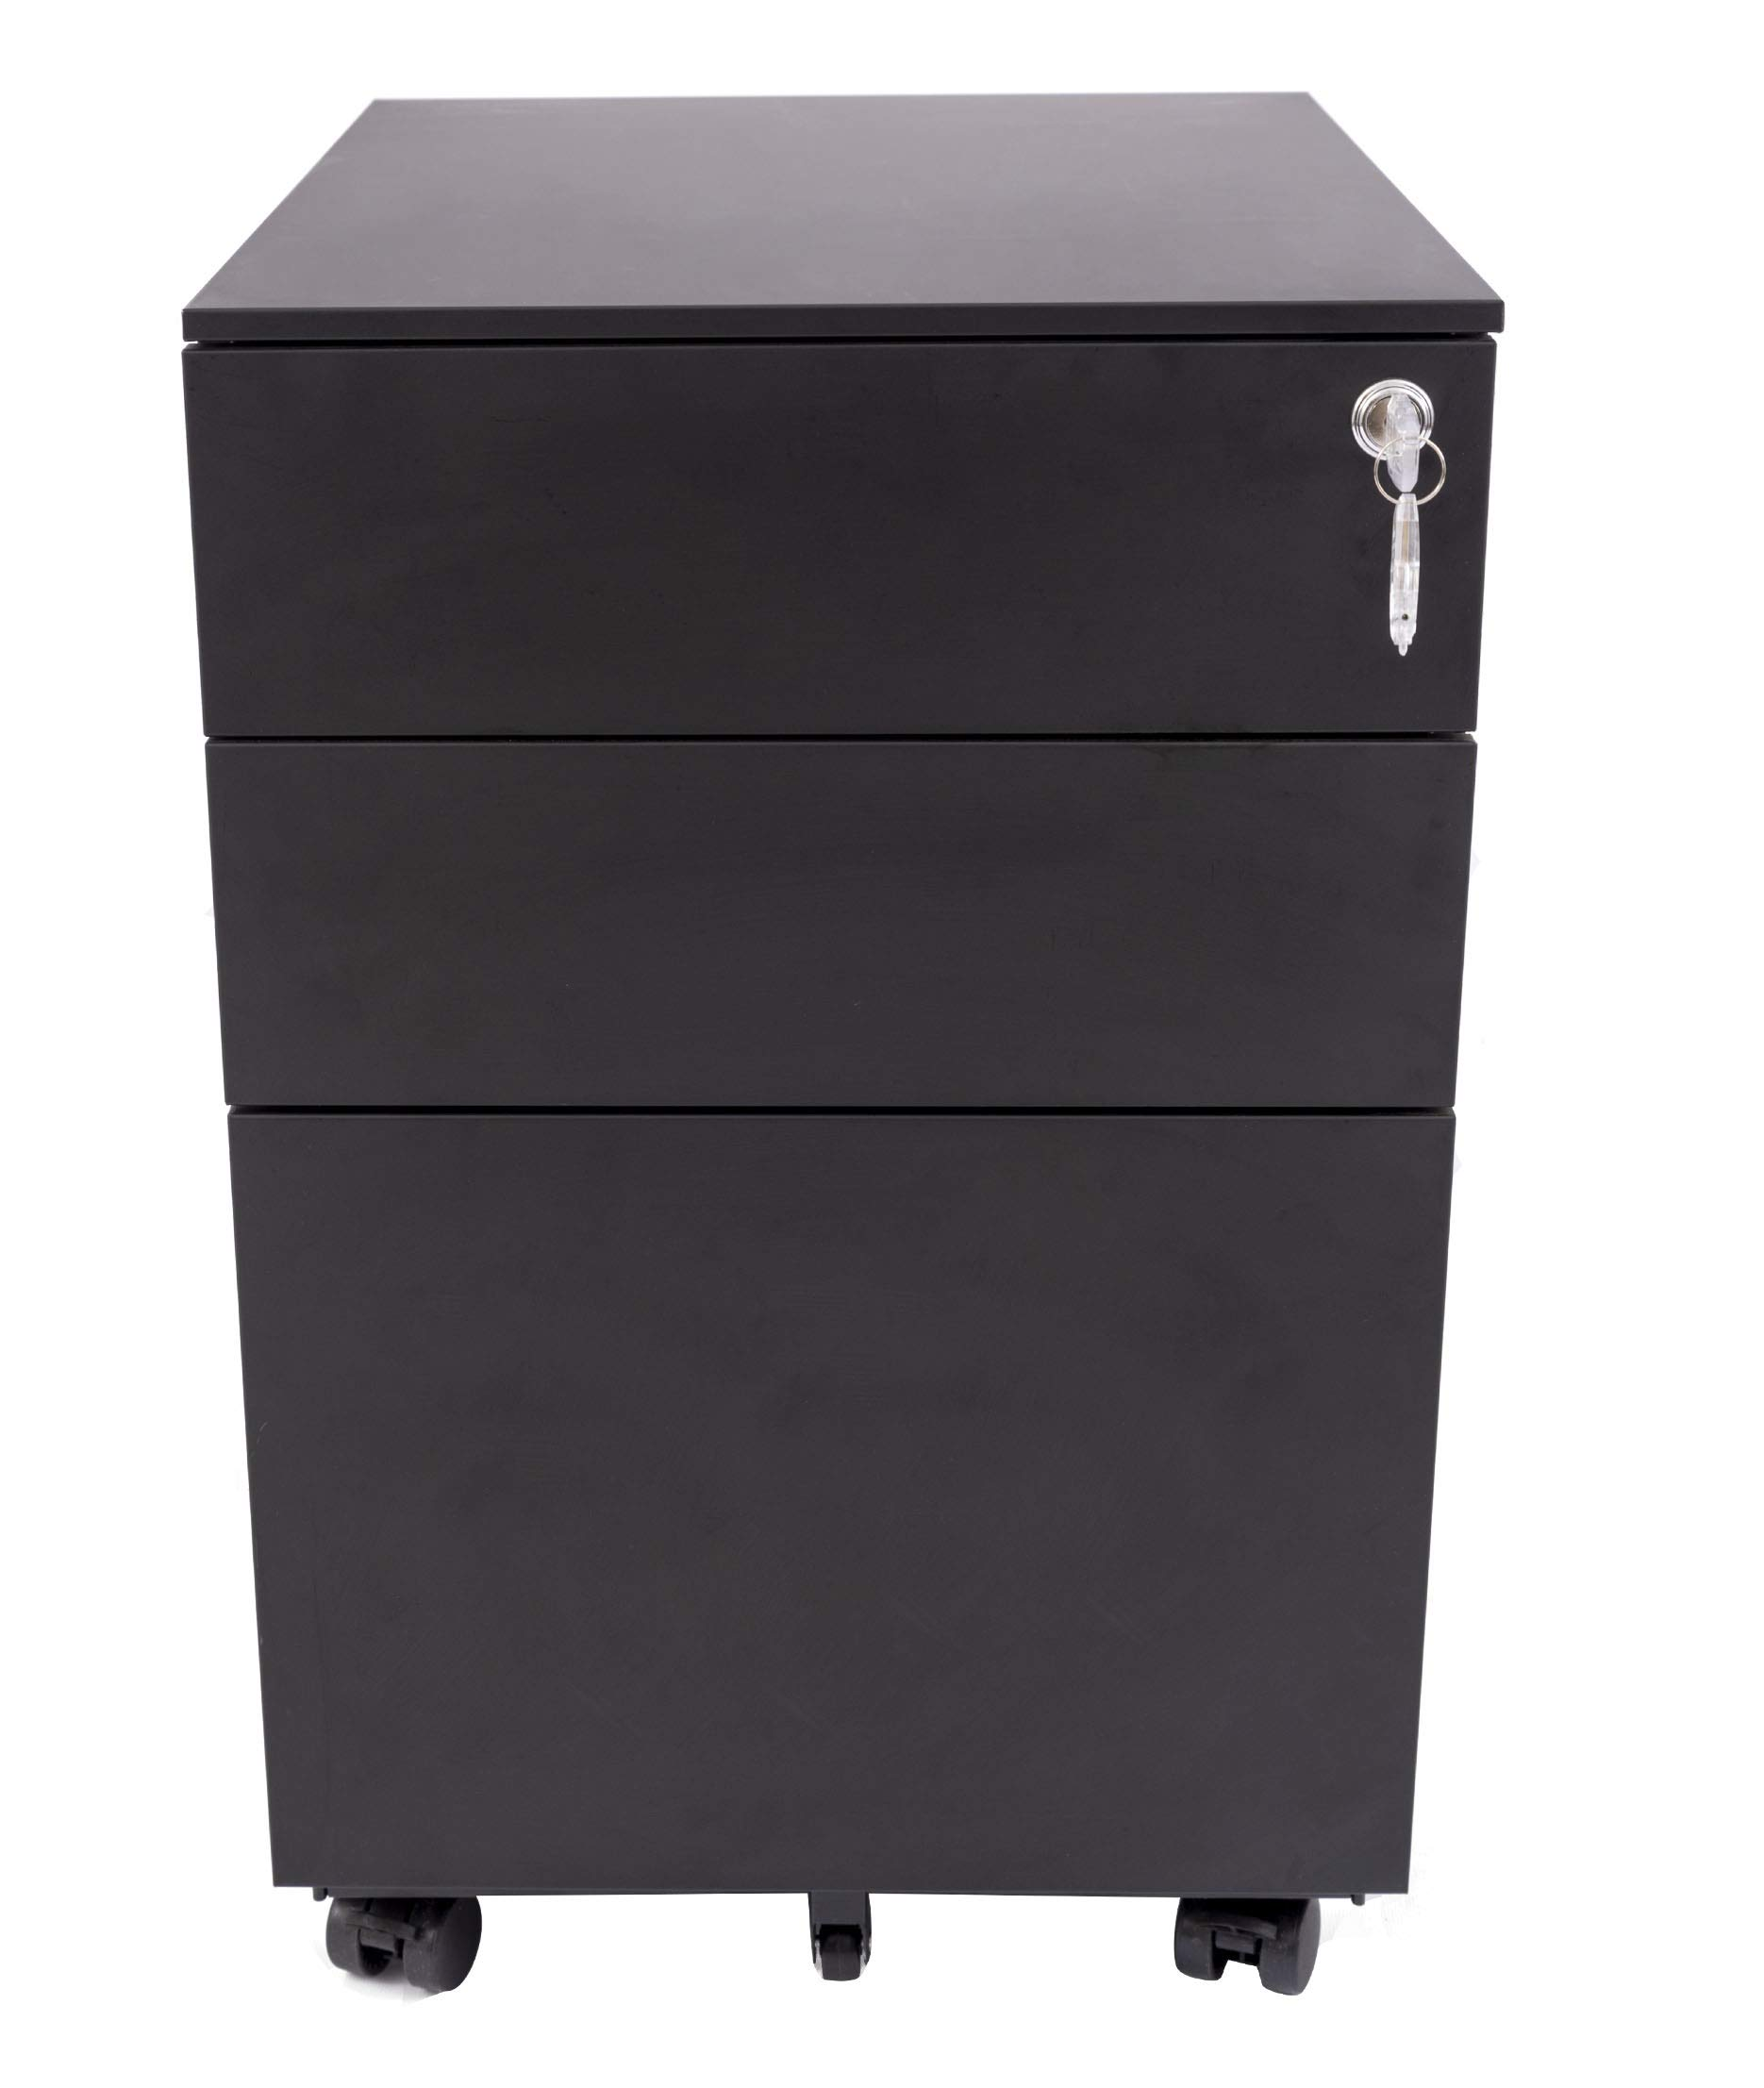 Stand Up Desk Store Wide 3 Drawer File Cabinet/Rolling File Cabinet | 5 Wheel Design Increases Stability and Saves Weight (15.4'' x 20.5'' x 23.6'', Black)